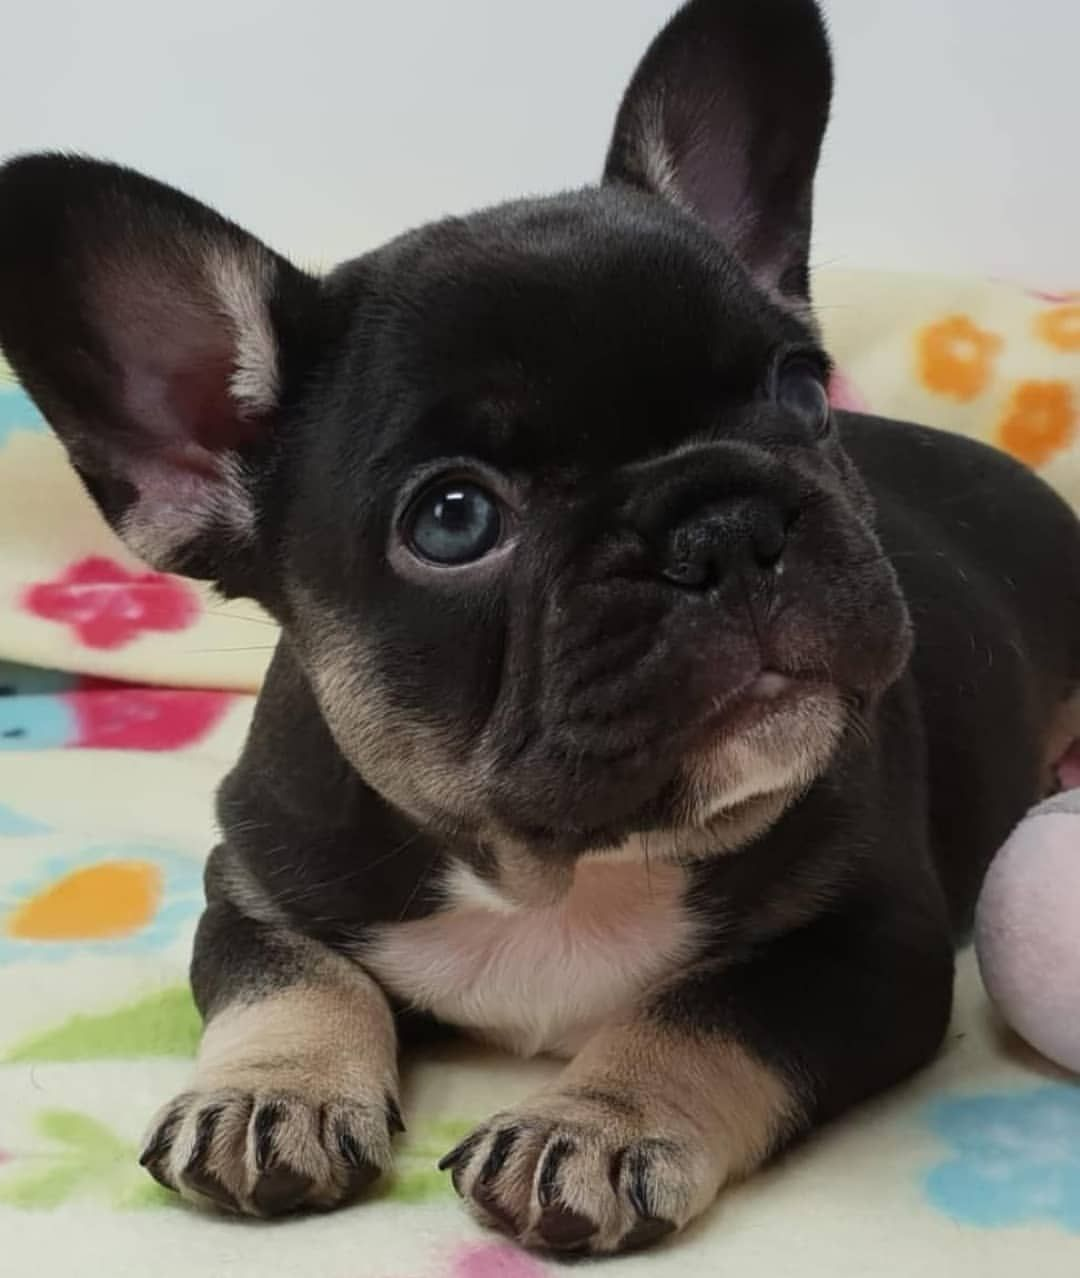 Repinned Image Of Frenchie Puppy French Bulldog Puppy Cute Baby Animals Cute Dogs And Puppies Bulldog Puppies